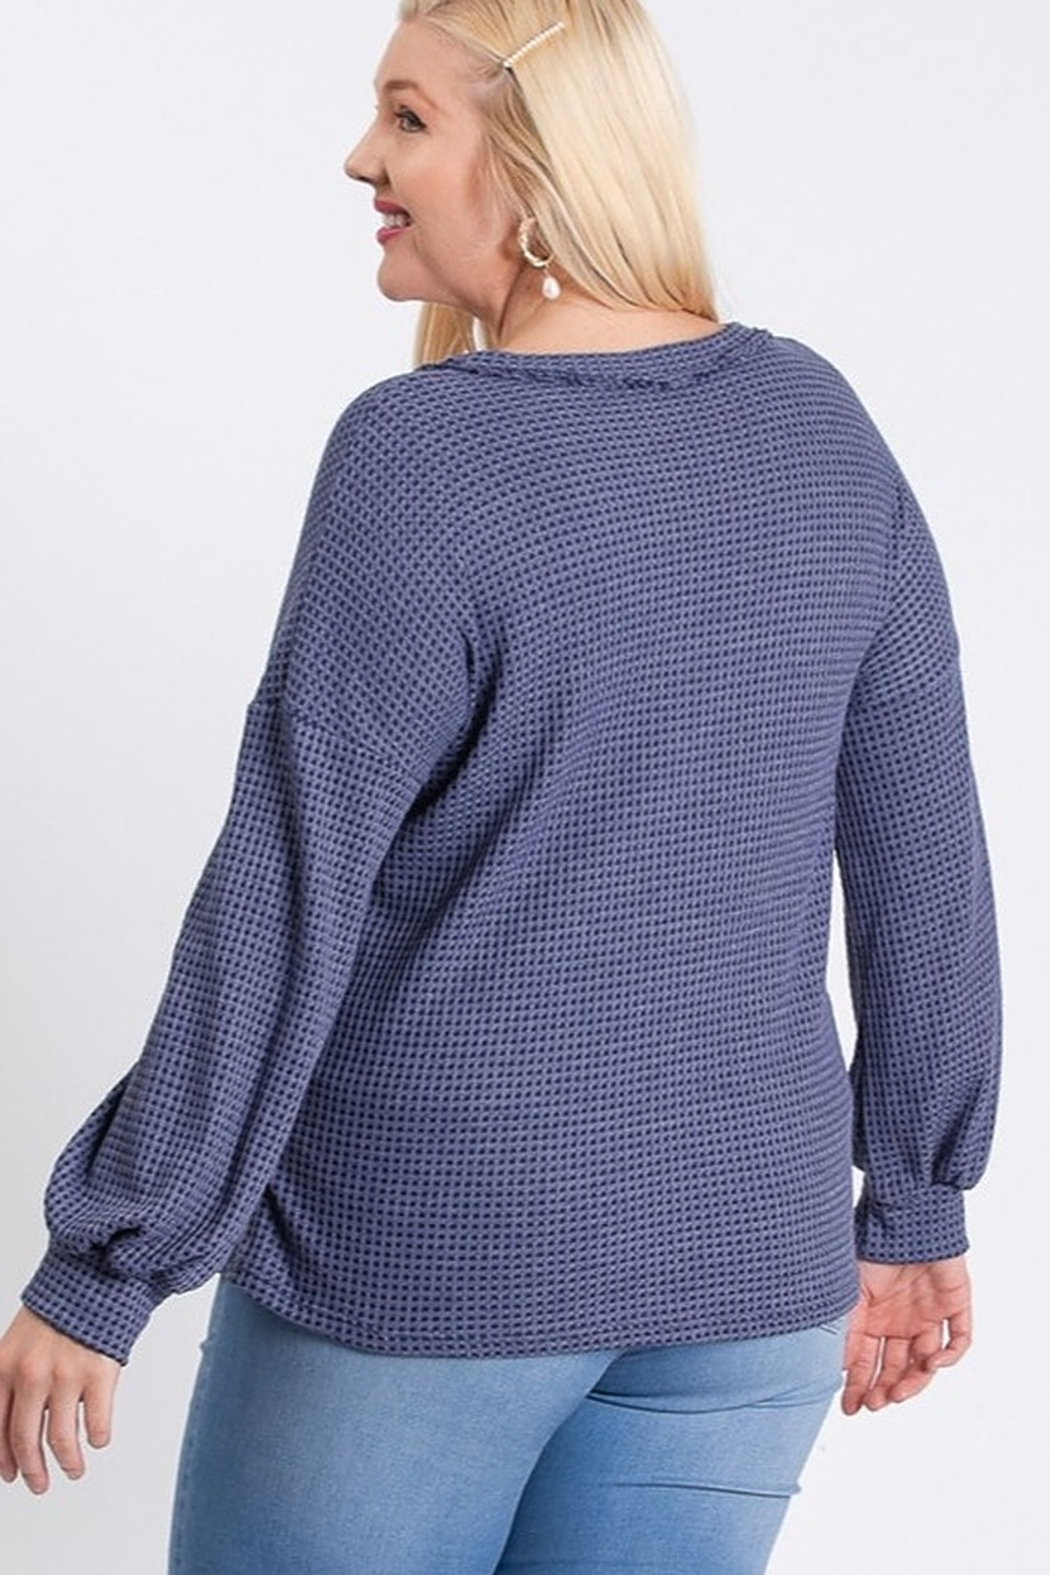 Hailey & Co Two Tone Thermal Top - Front Full Image